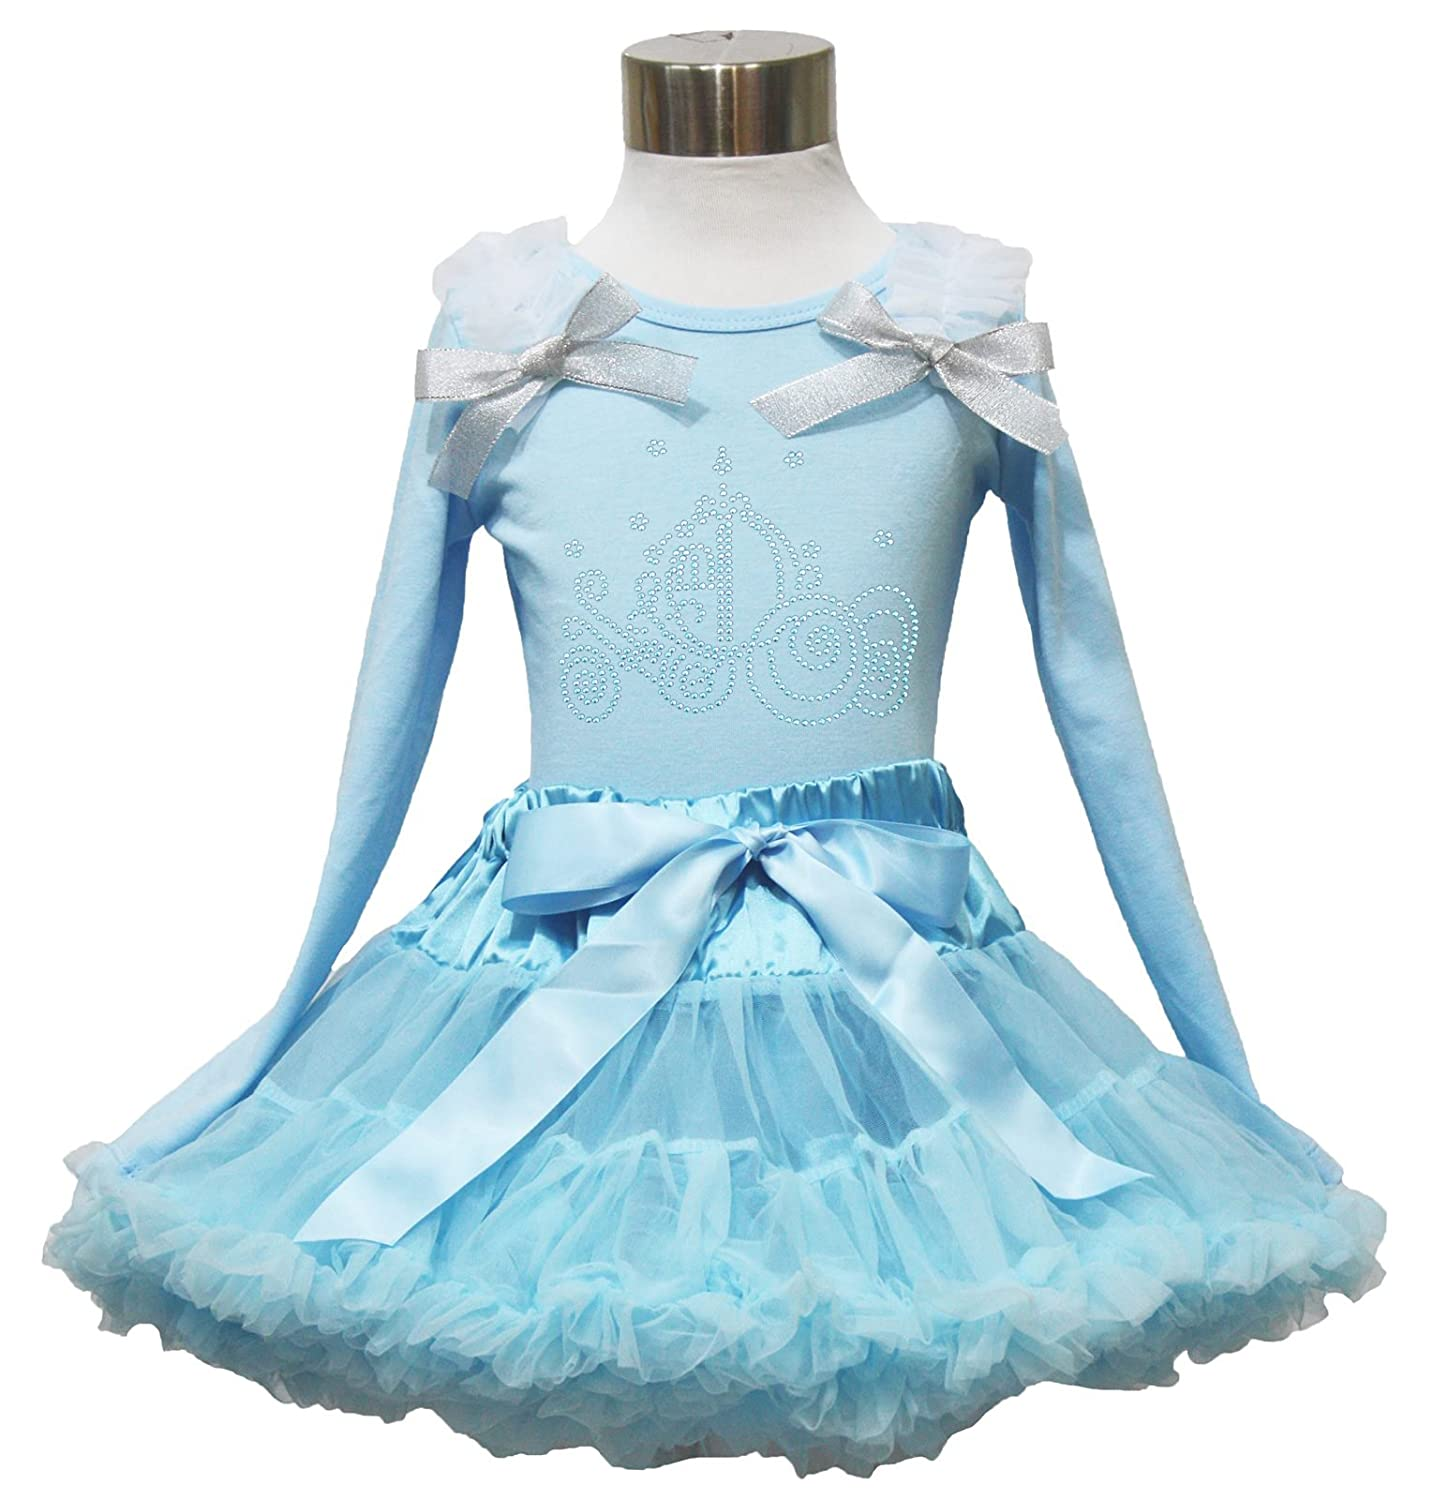 Pumpkin Carriage Princess Light Blue L//s Top Pettiskirt Girl Cloth Outfit 1-8y